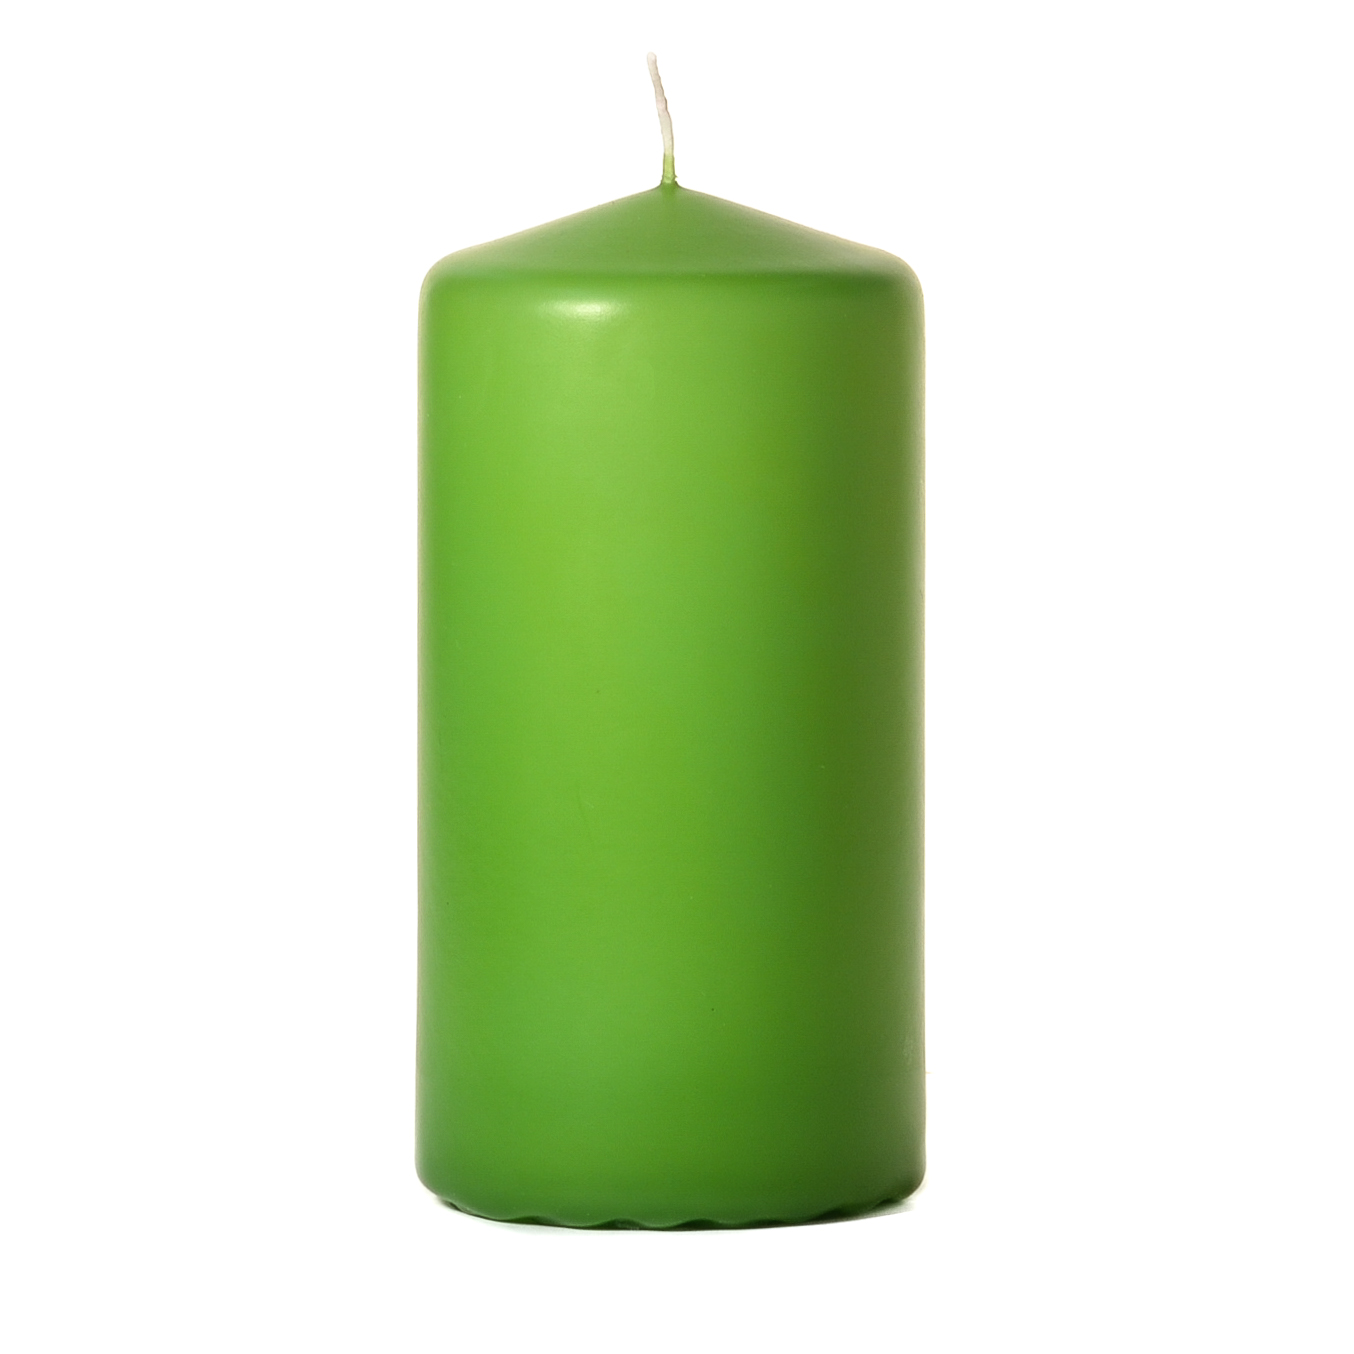 3x6 Lime Green Pillar Candles Unscented